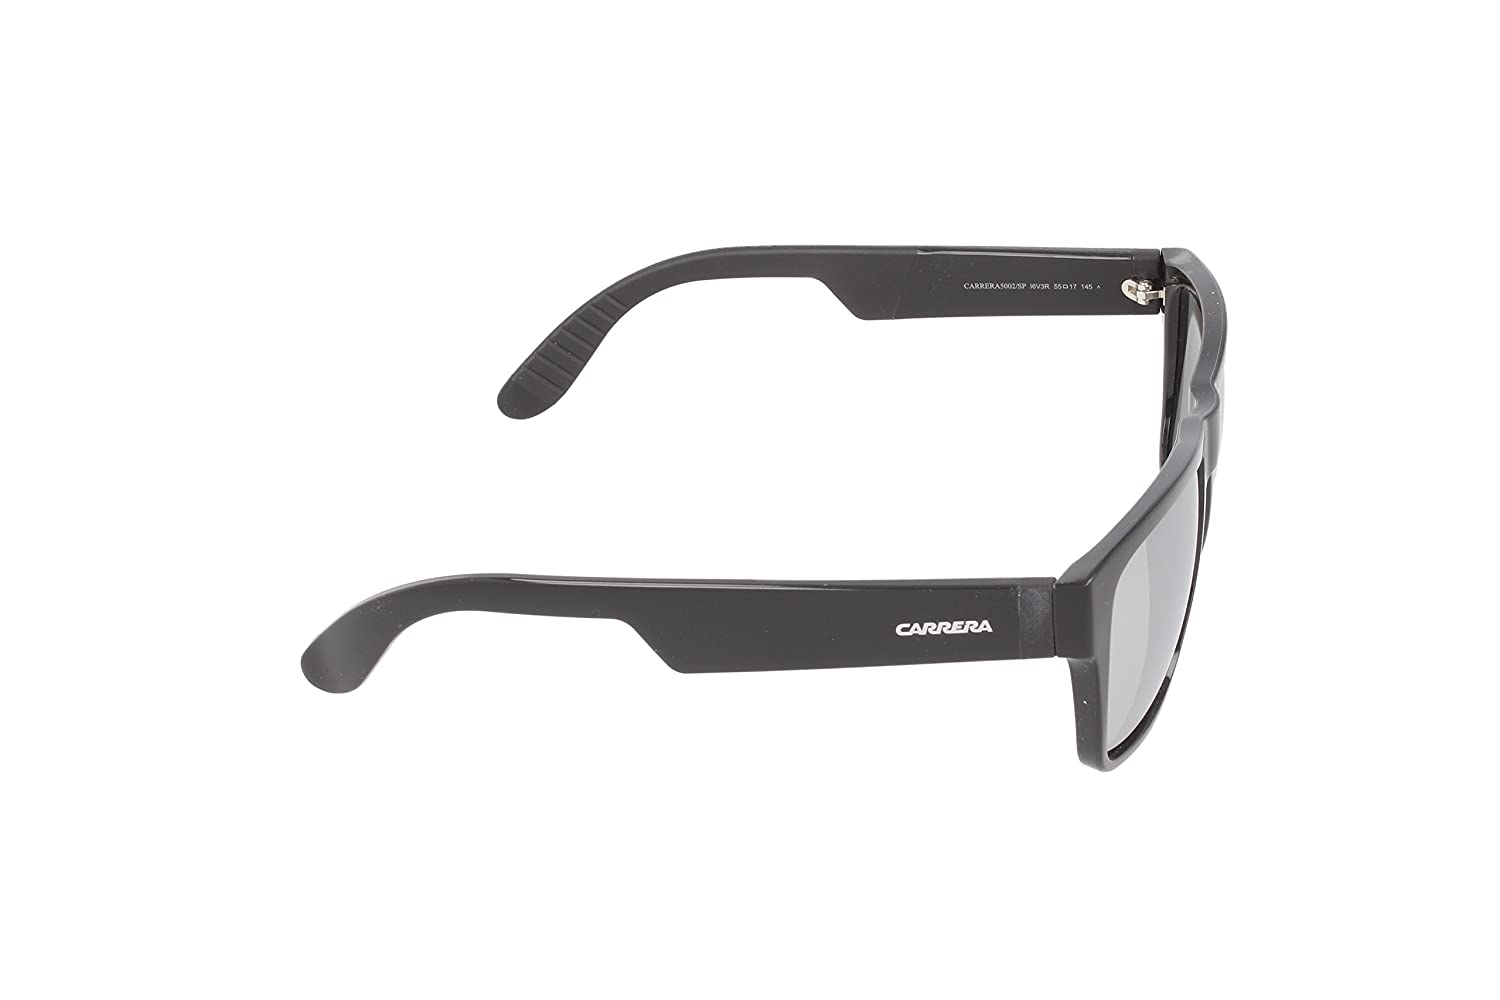 bbe41718f52c Amazon.com: Carrera Ca5002sps Wayfarer, Shiny Black & Matte Black, 55 mm:  Clothing